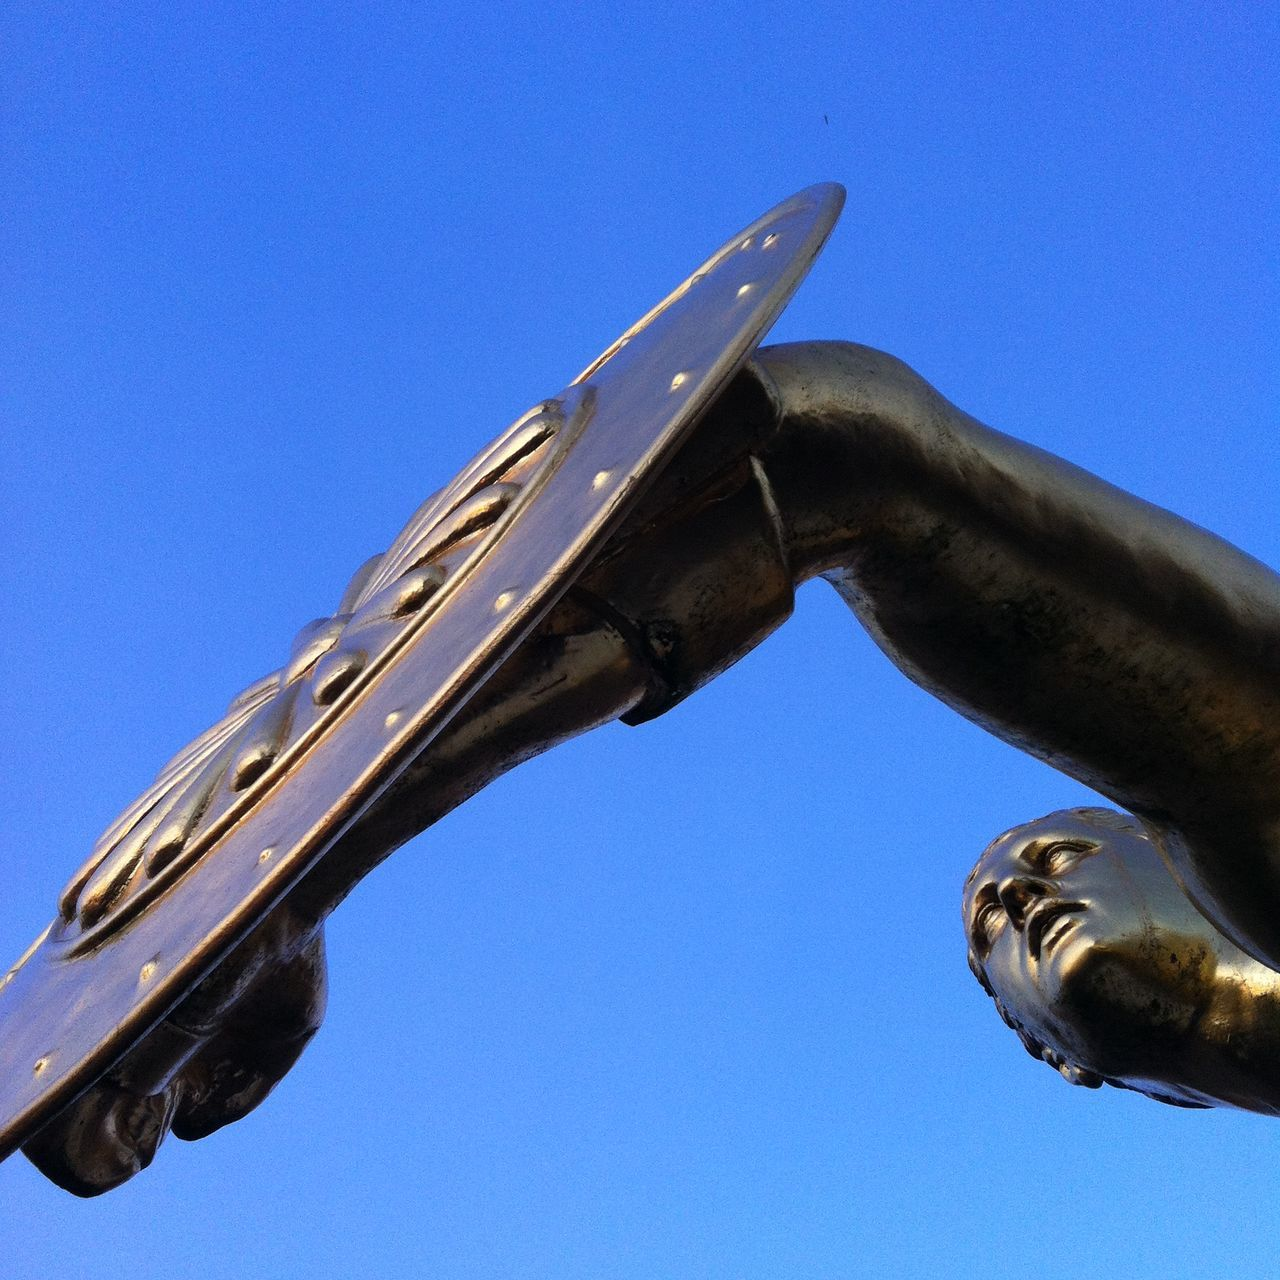 clear sky, low angle view, blue, no people, outdoors, metal, day, sculpture, close-up, statue, sky